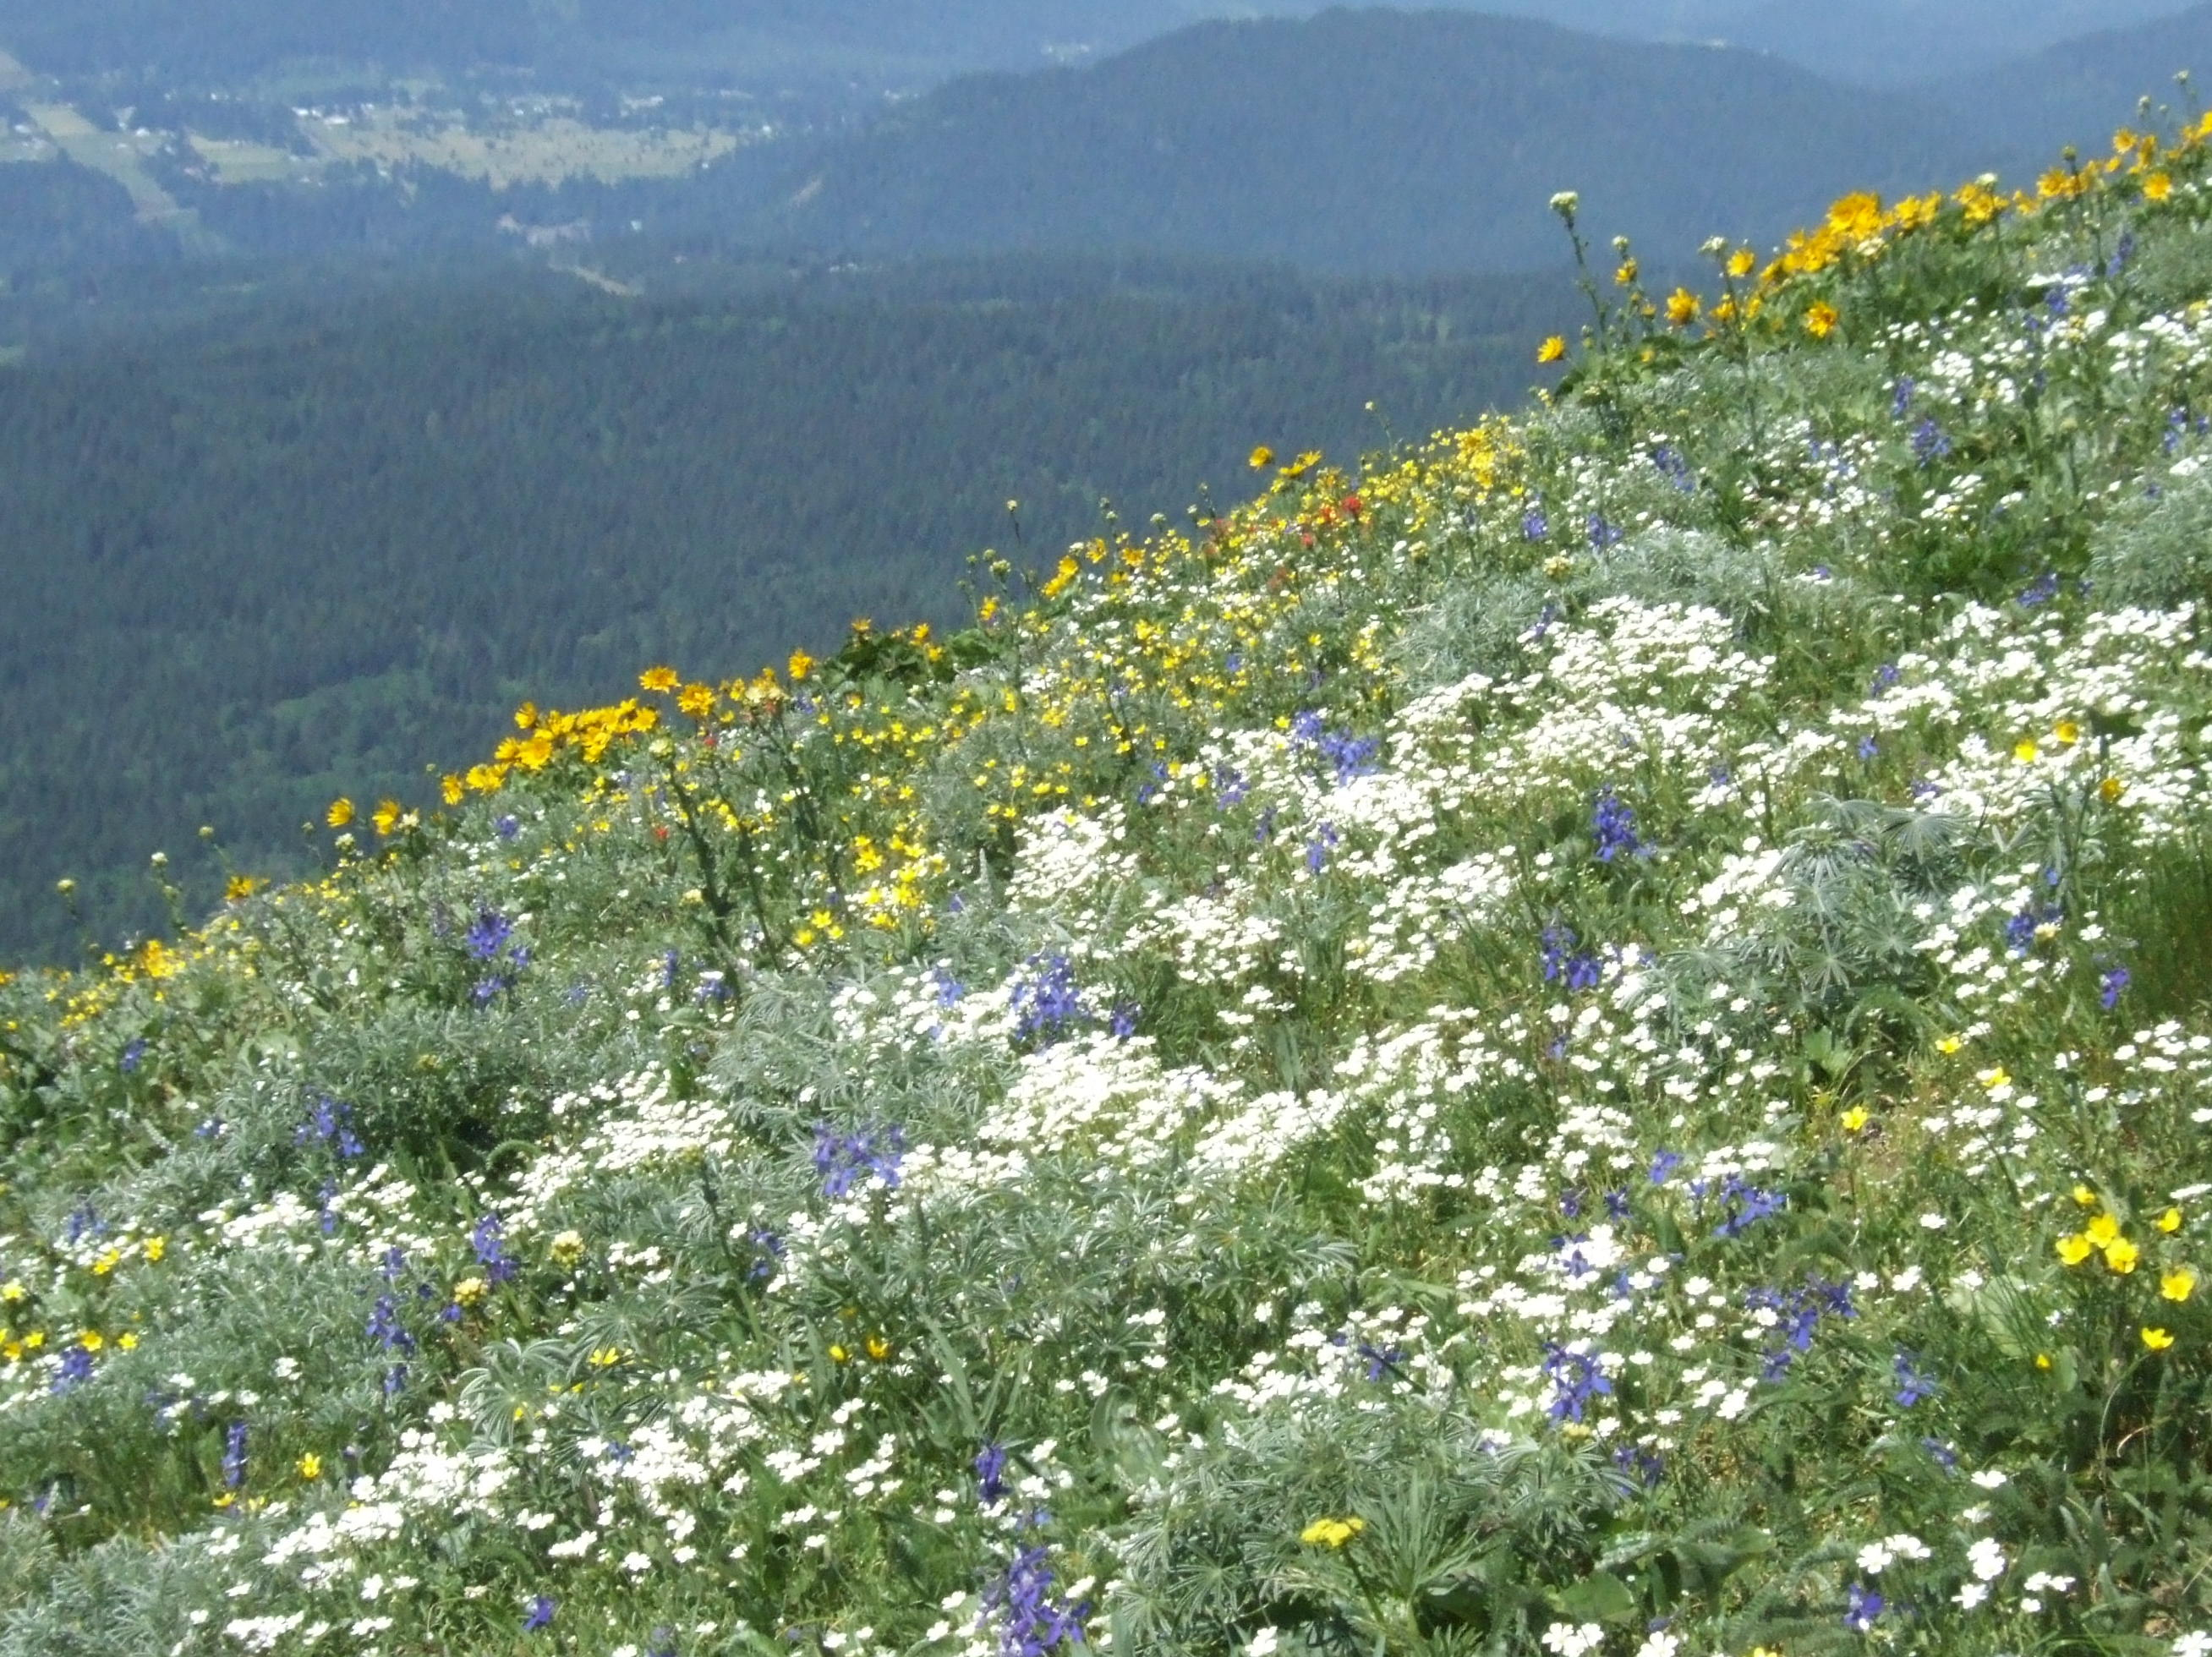 Balsam root, lupine, indian paintbrush, snow-in-summer, buttercup